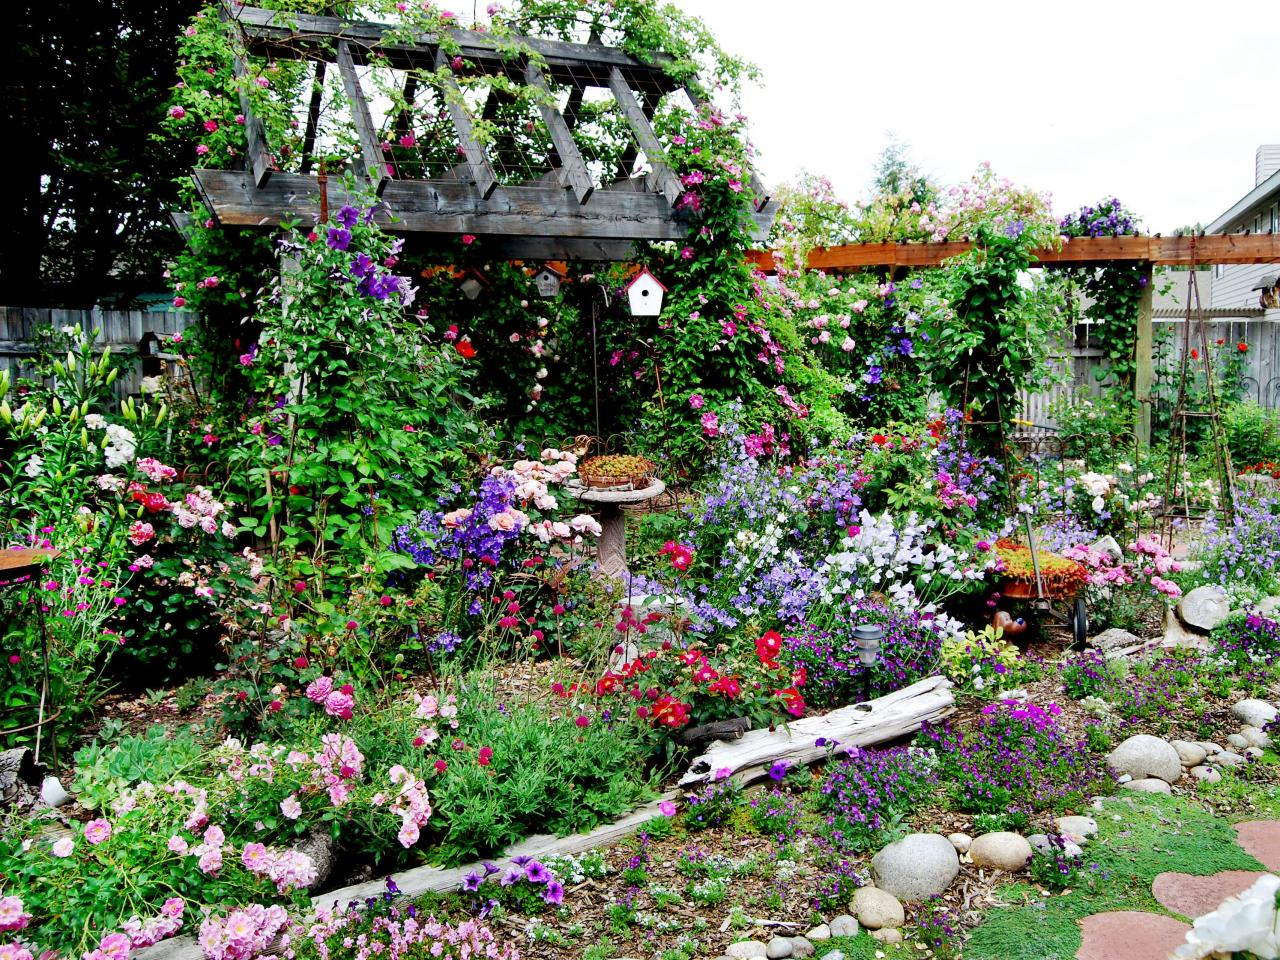 10 Elements that Will Make Your Garden Even More Beautiful